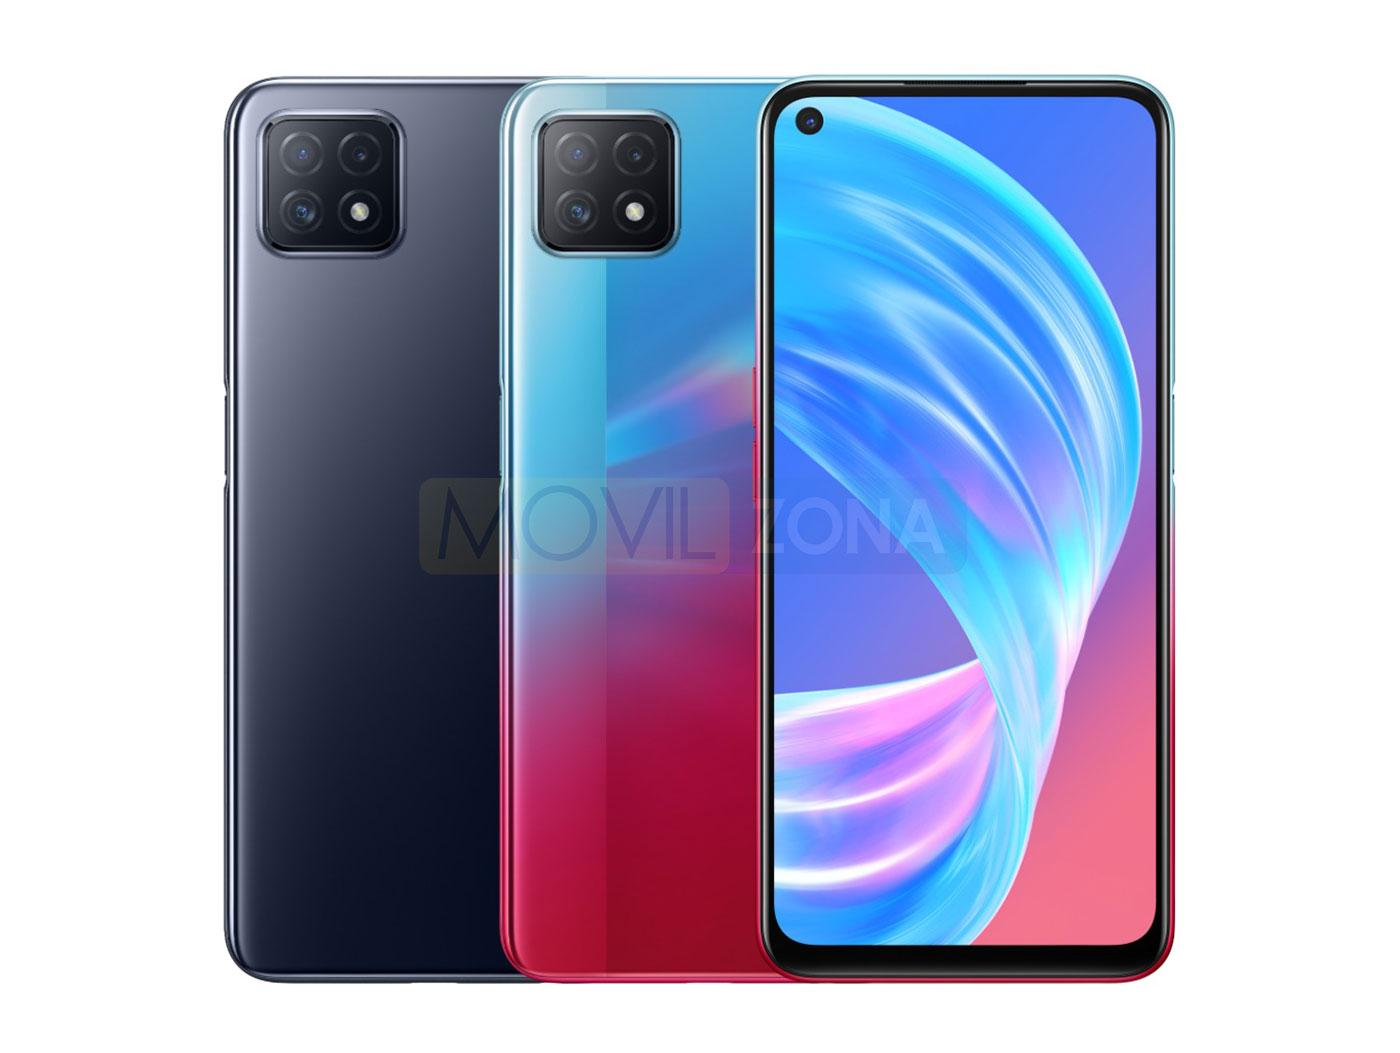 OPPO A73 5G colores